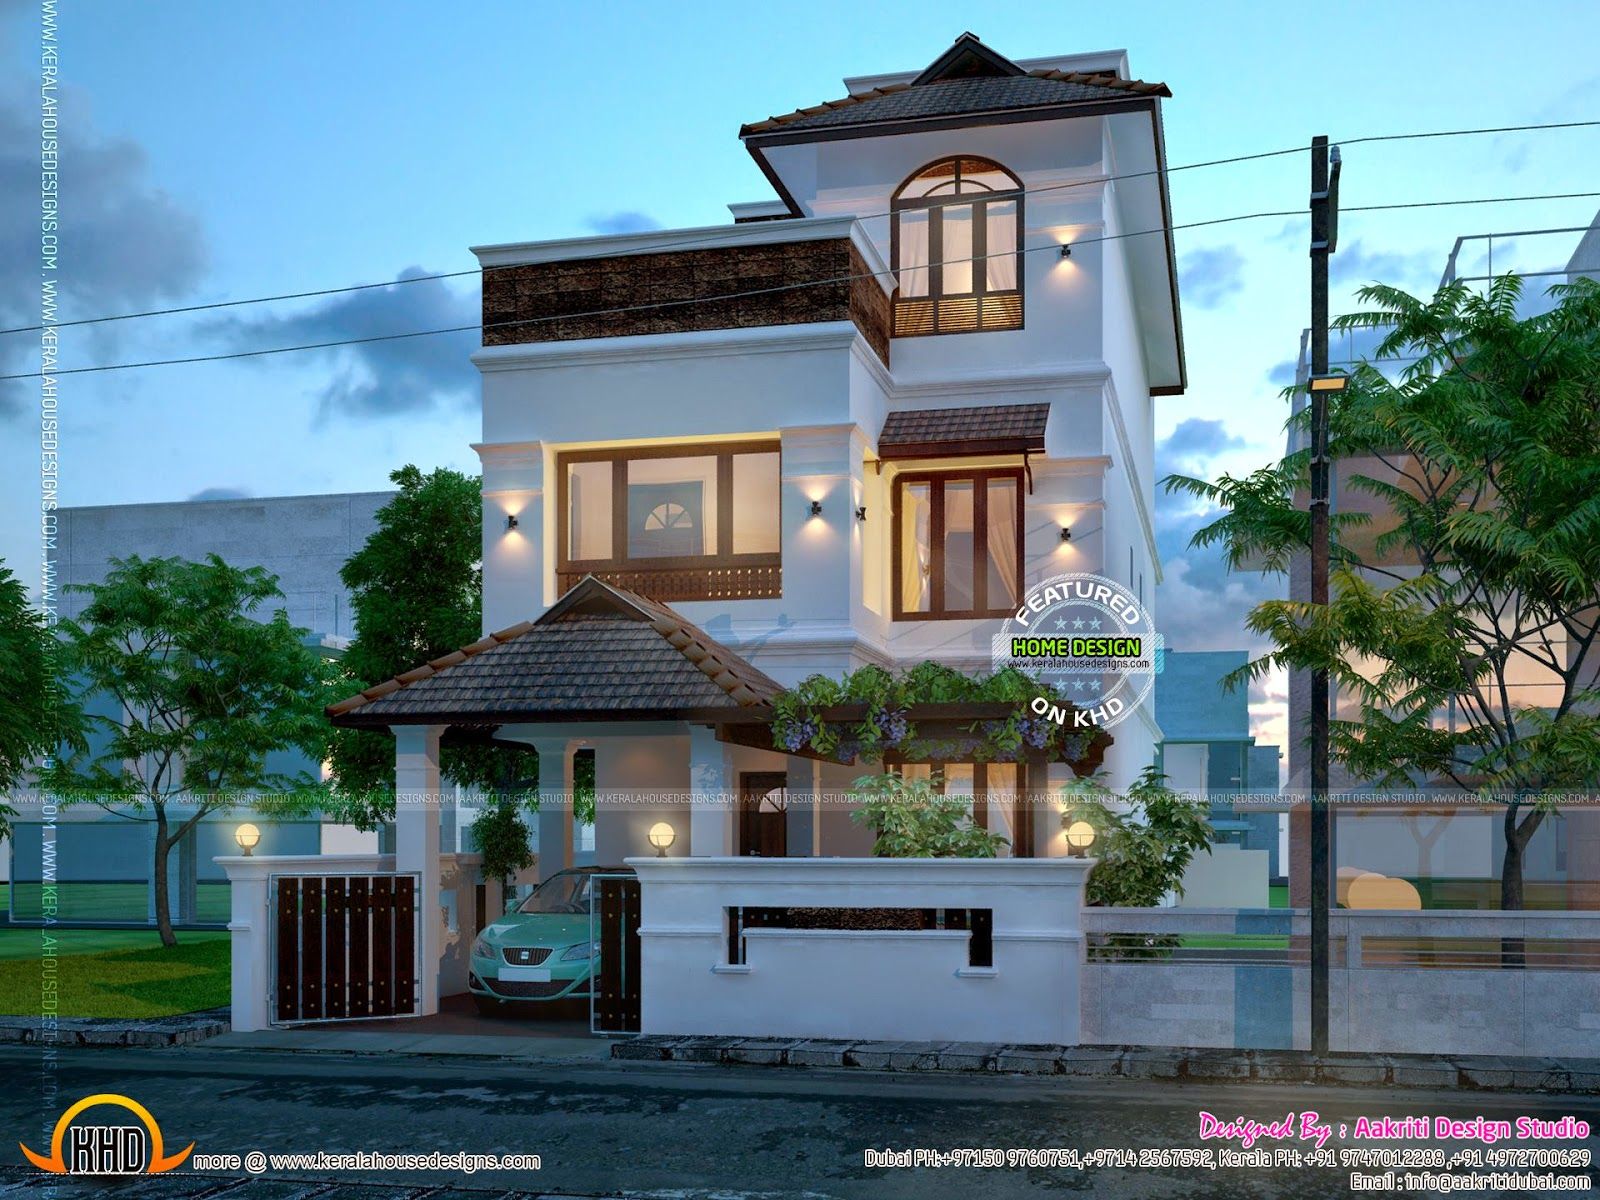 New house design kerala home design and floor plans House design sites